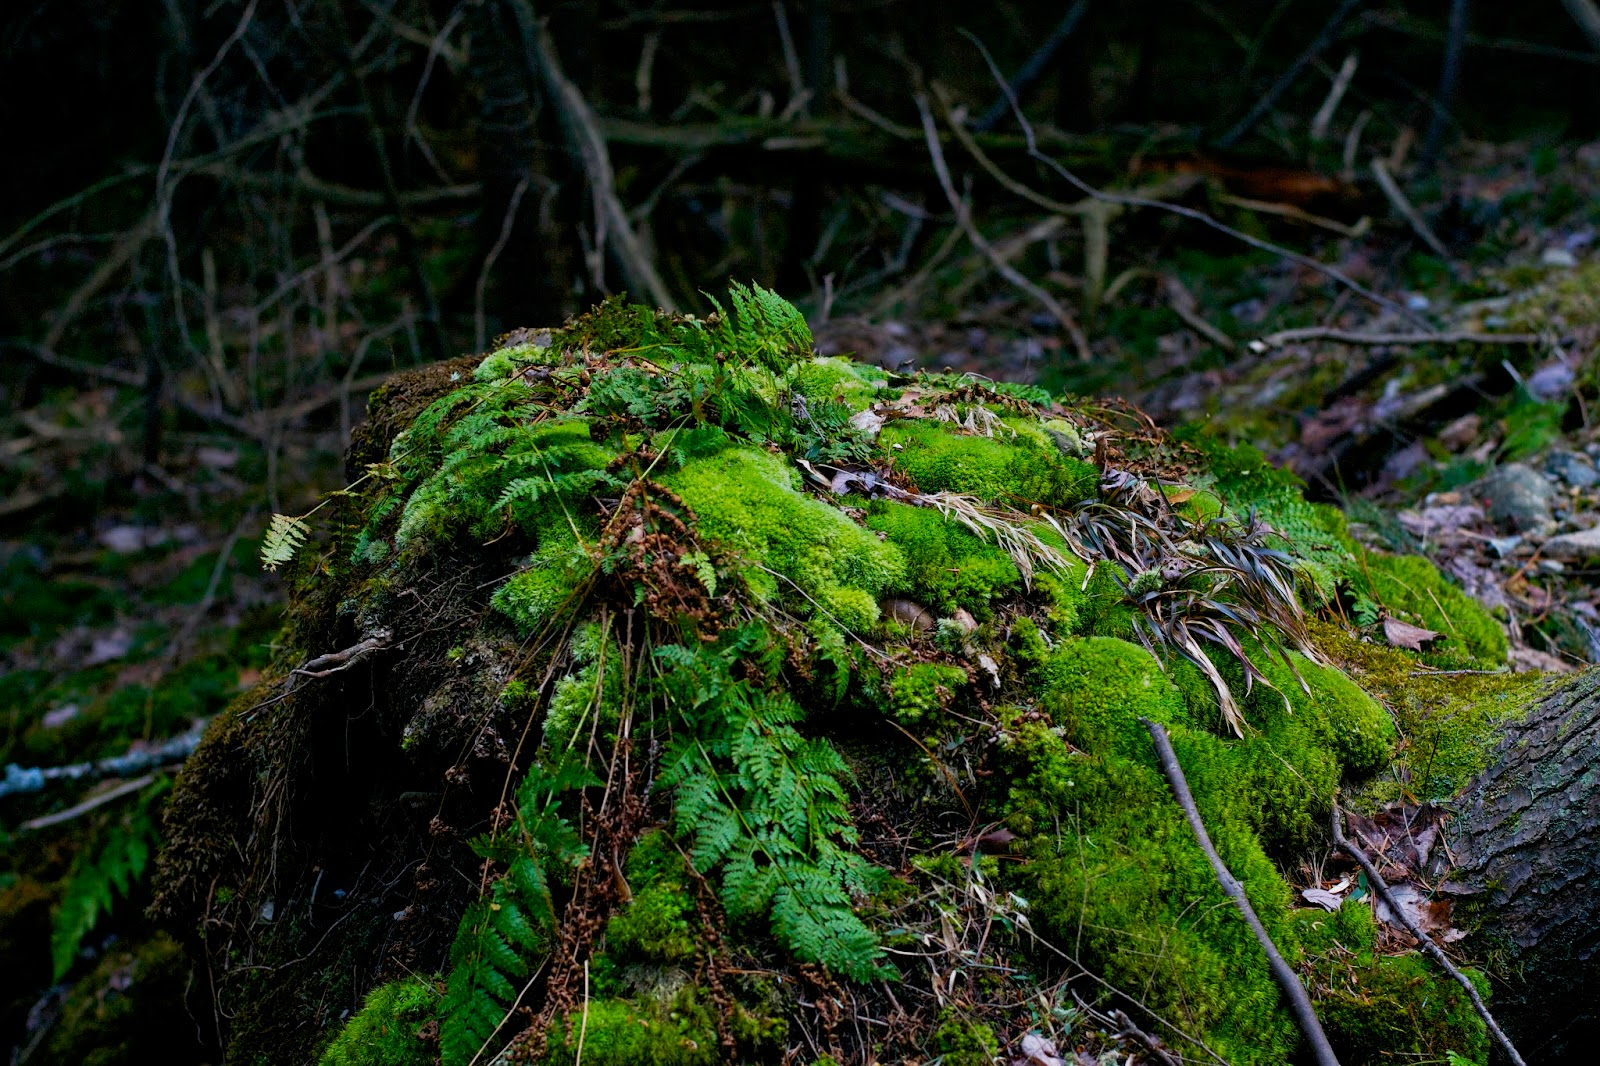 Ferny and mossy finds. Like a magical, faery world.